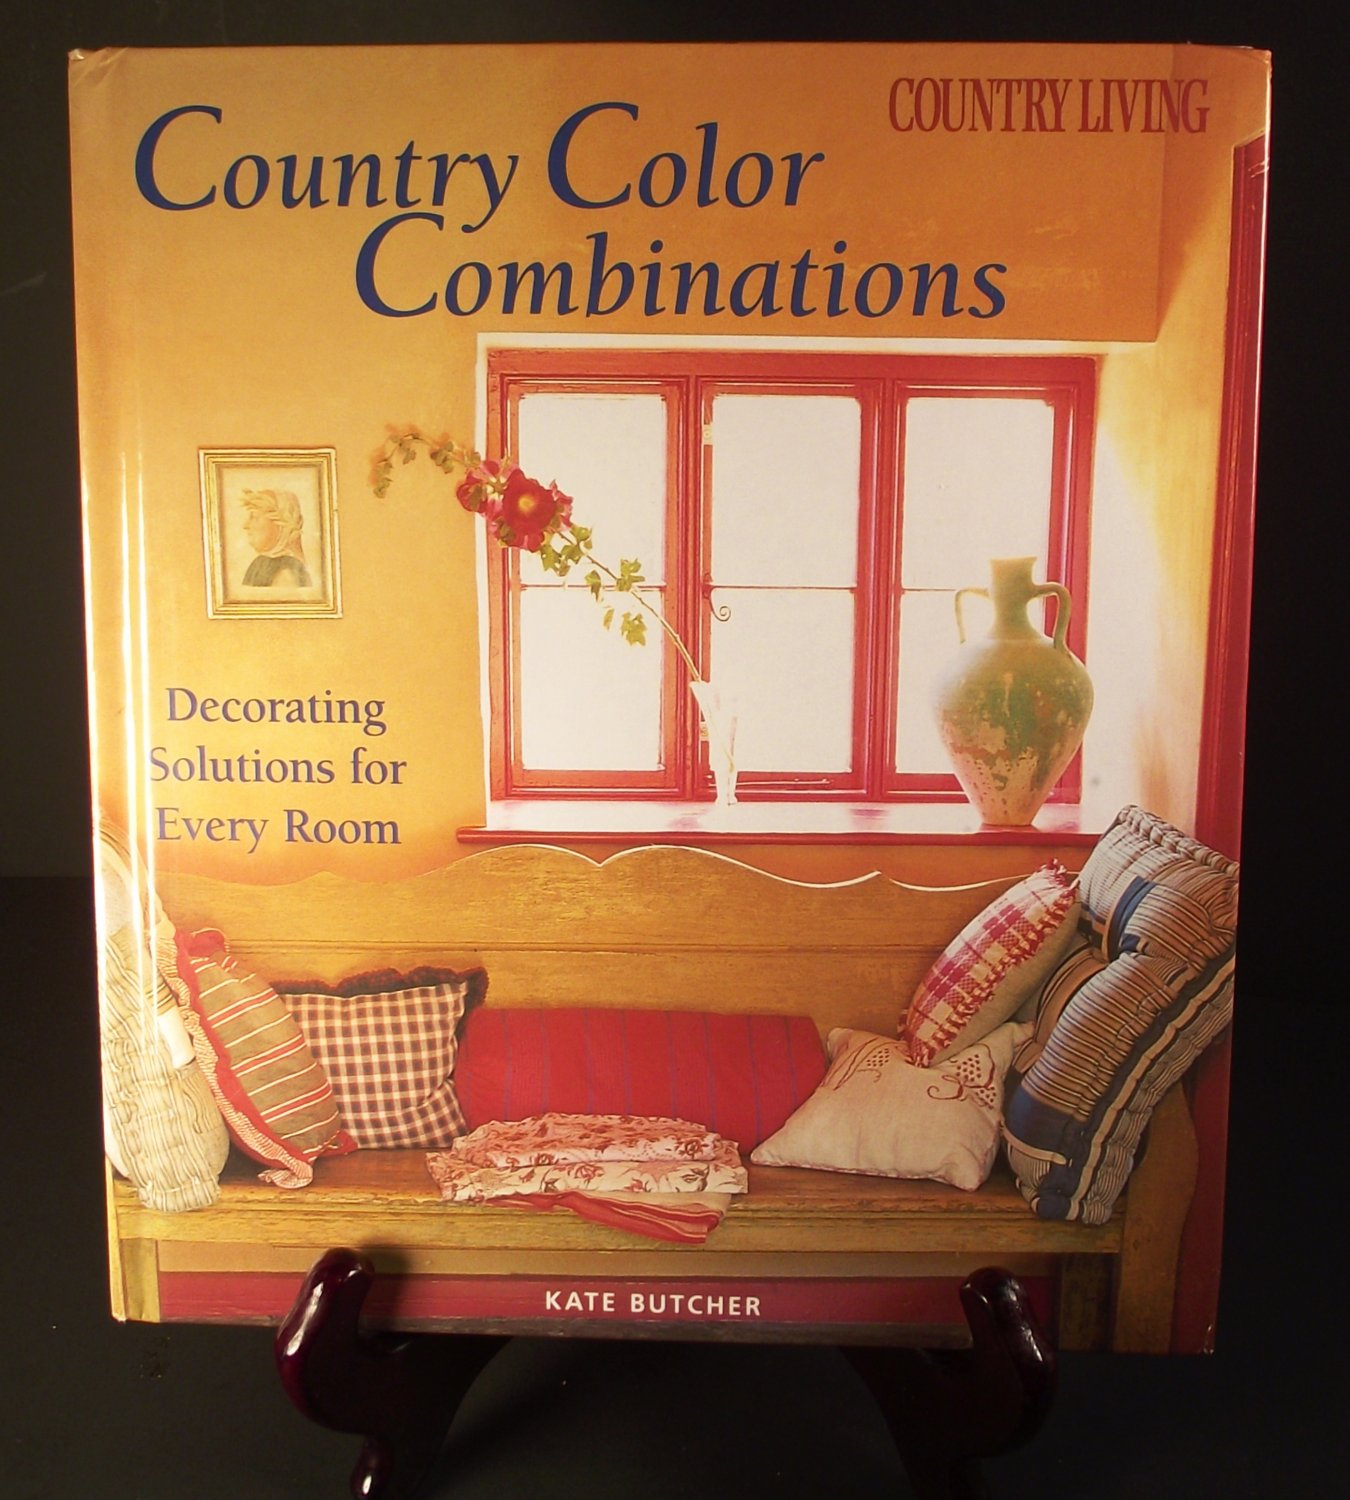 Home Decor Books Country Color Combinations Country Living Kate Butcher